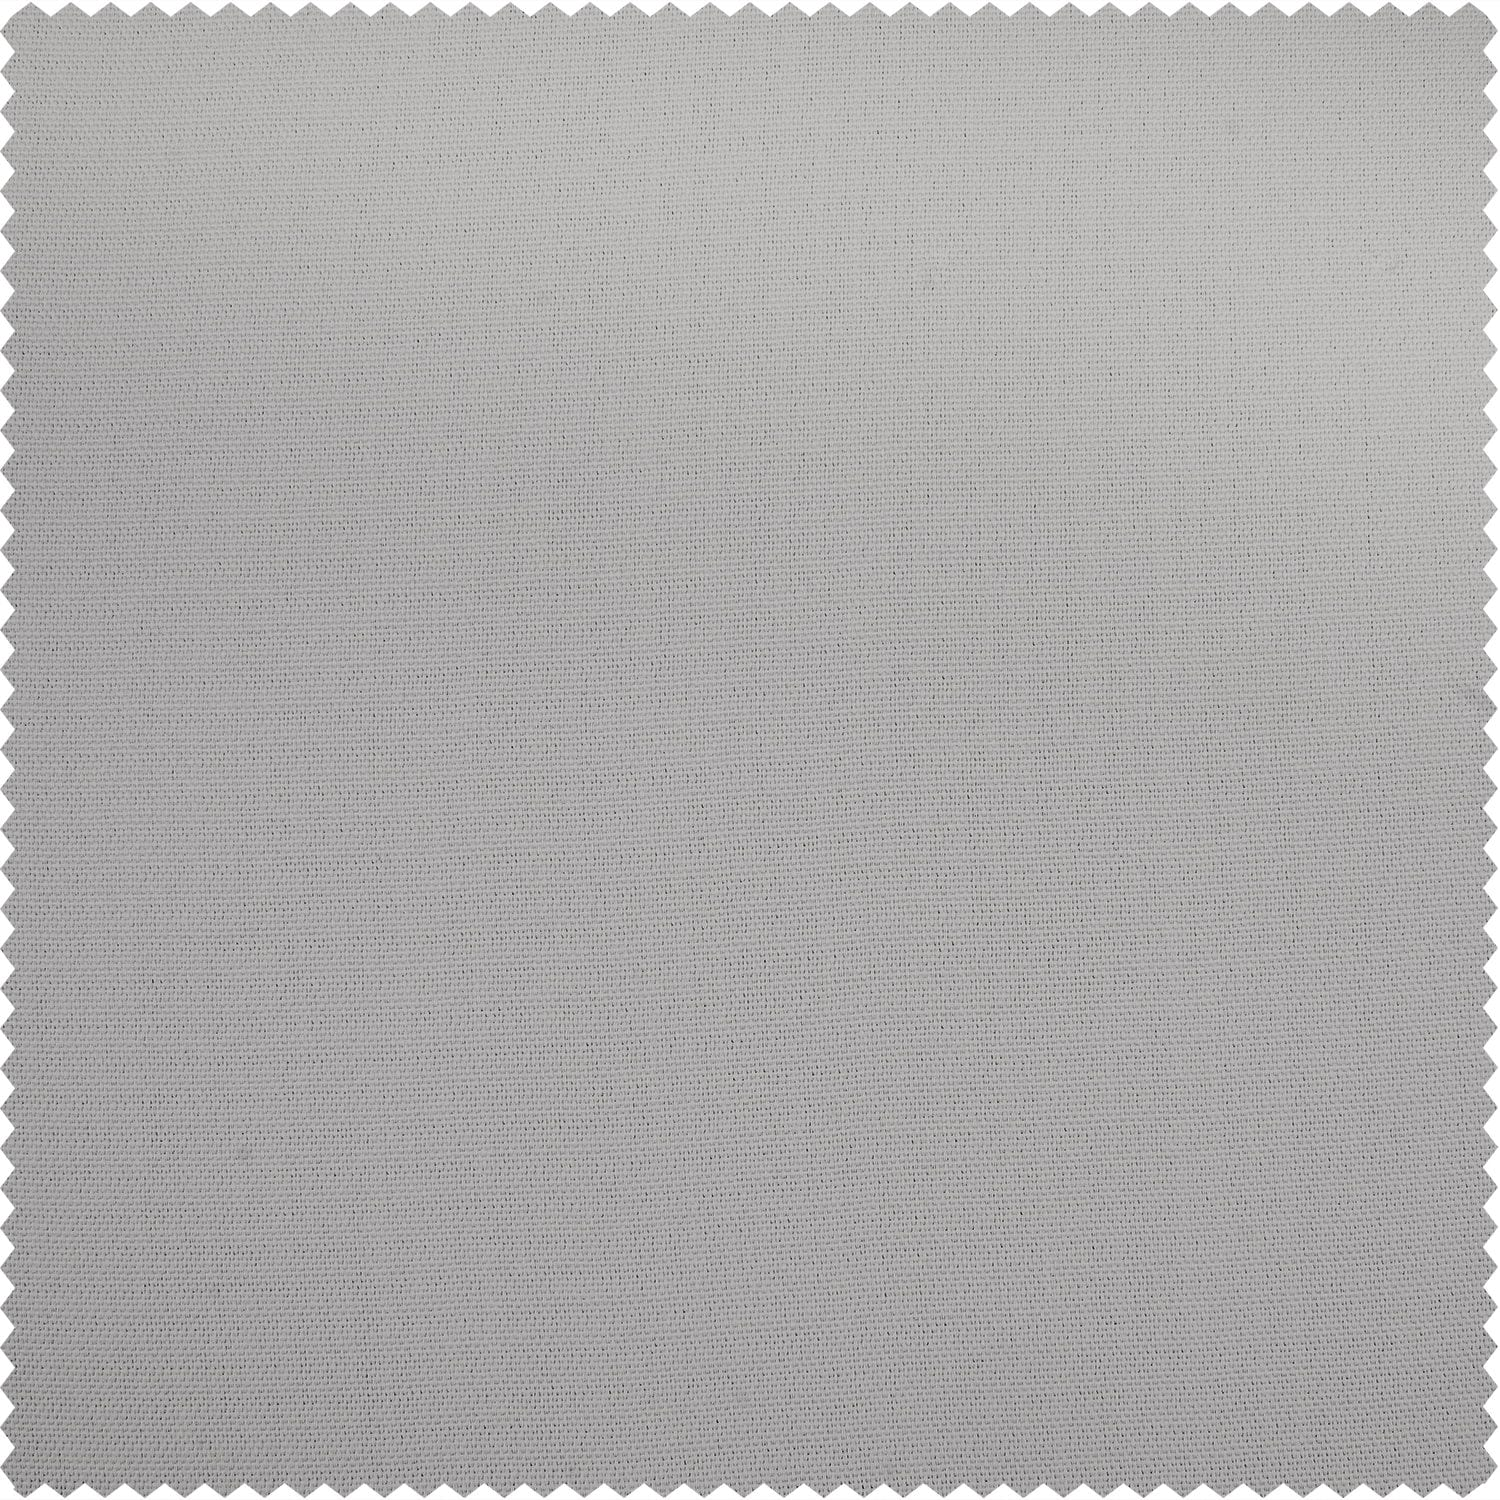 Colonial Off White Monochromatic Faux Linen Room Darkening Swatch